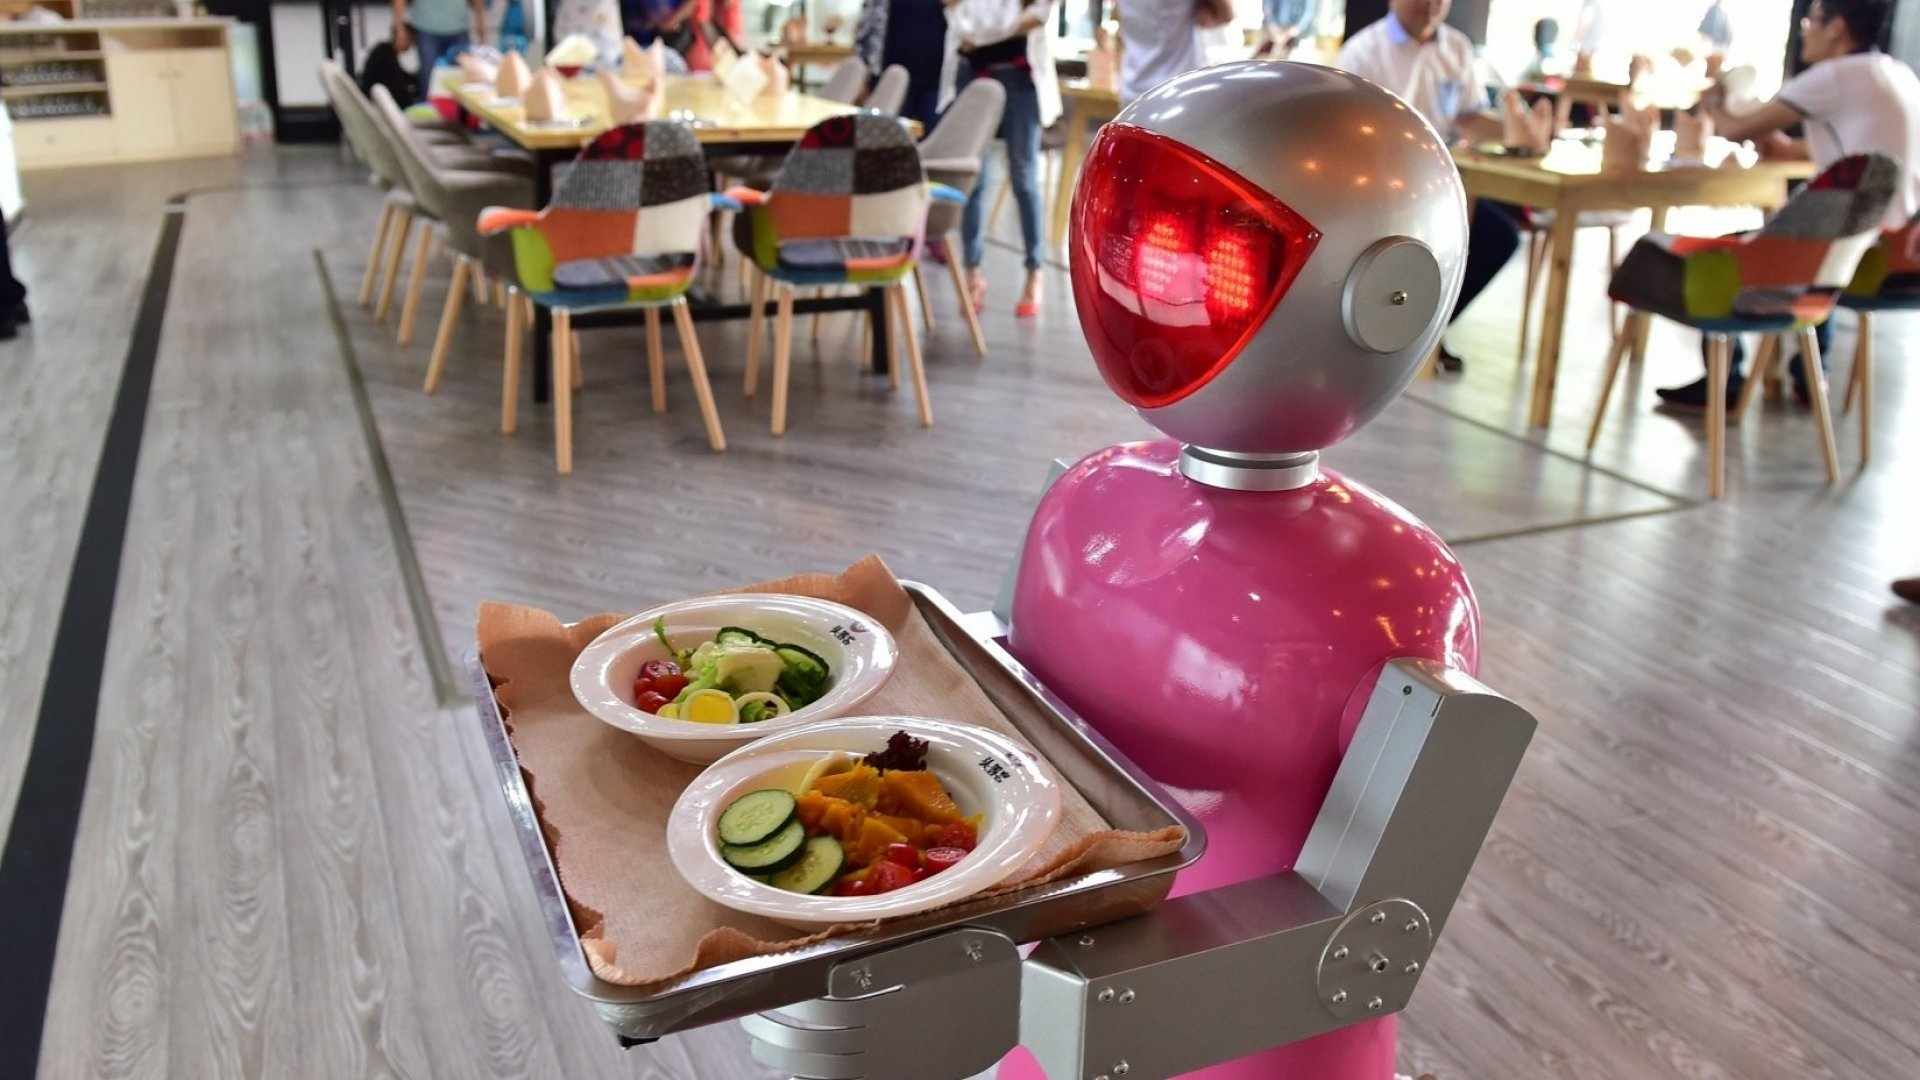 Robot Waiters in China Are Being Fired for Incompetence